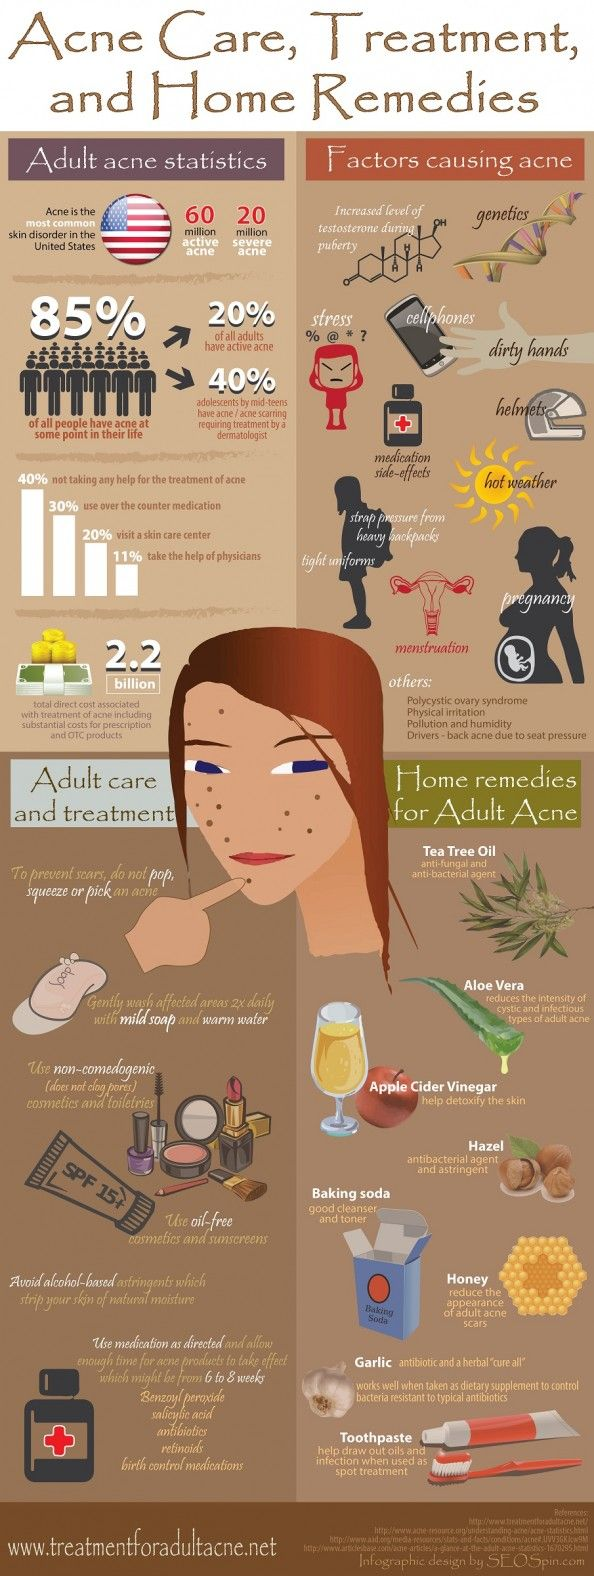 Acne Care, Treatment, and Home Remedies: gotta keep my skin at it's best at all times.